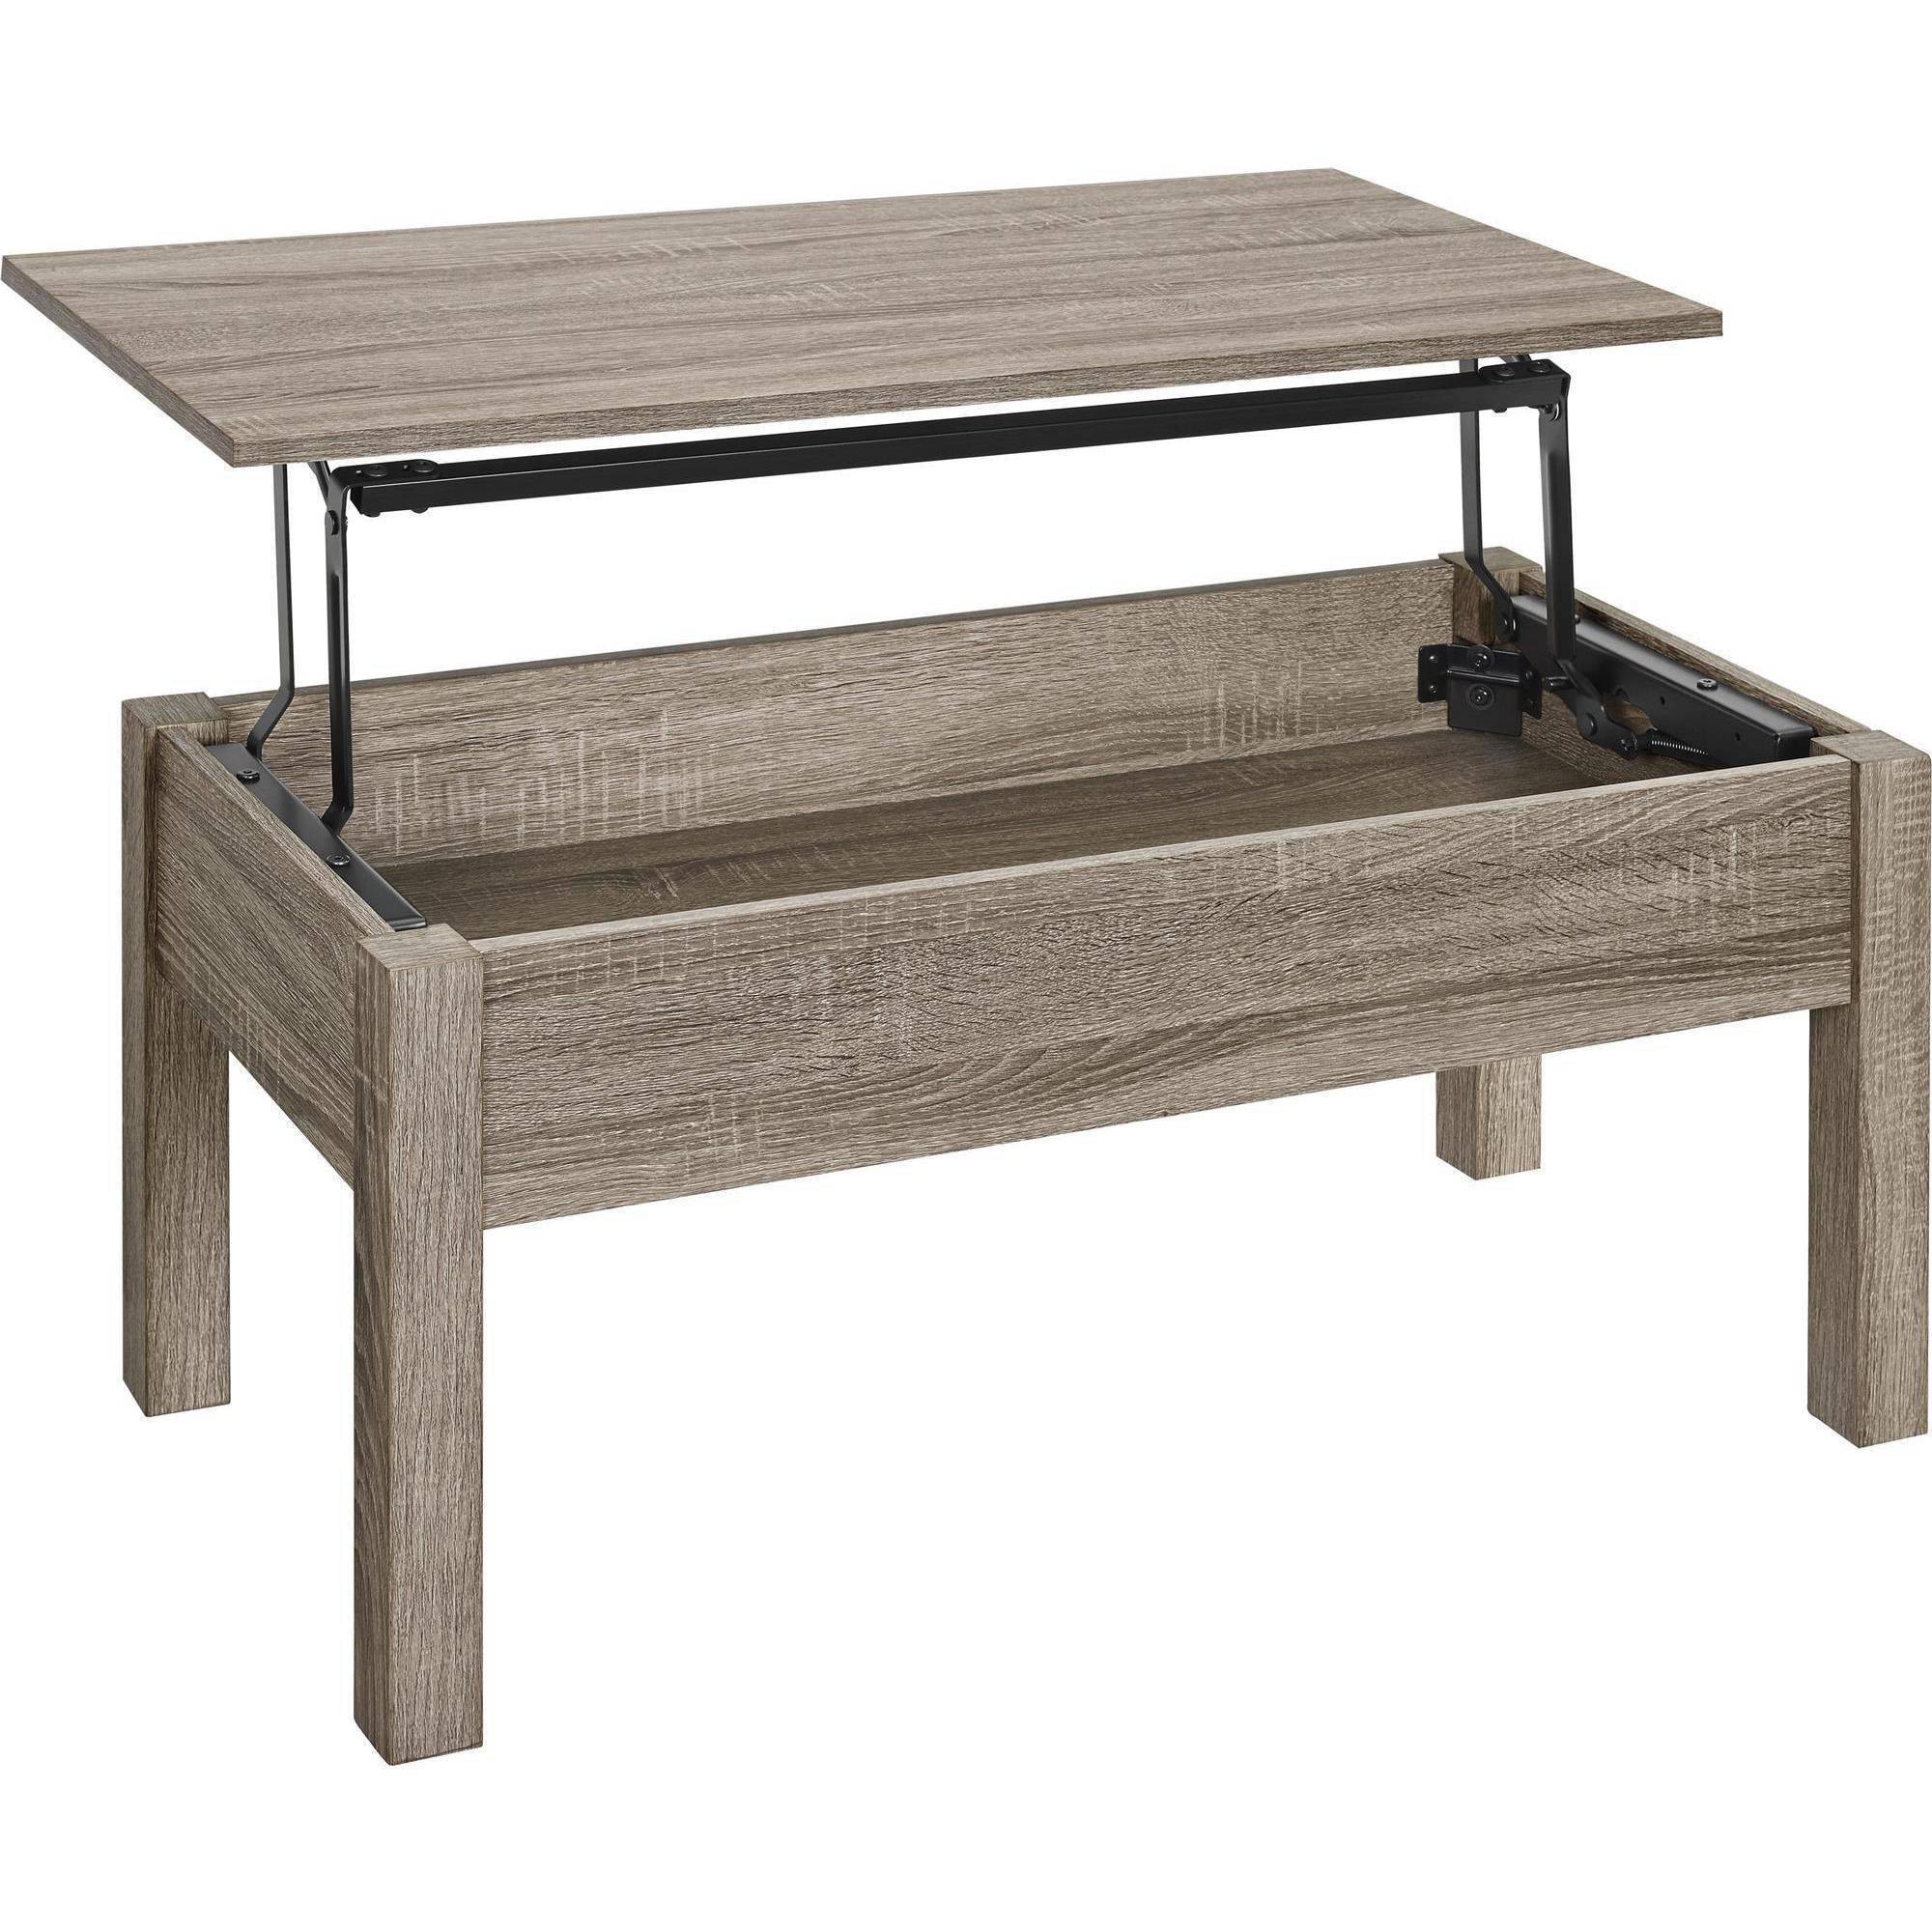 Mainstays Lift-Top Coffee Table, Multiple Colors - Walmart intended for Lift Top Coffee Tables (Image 19 of 30)